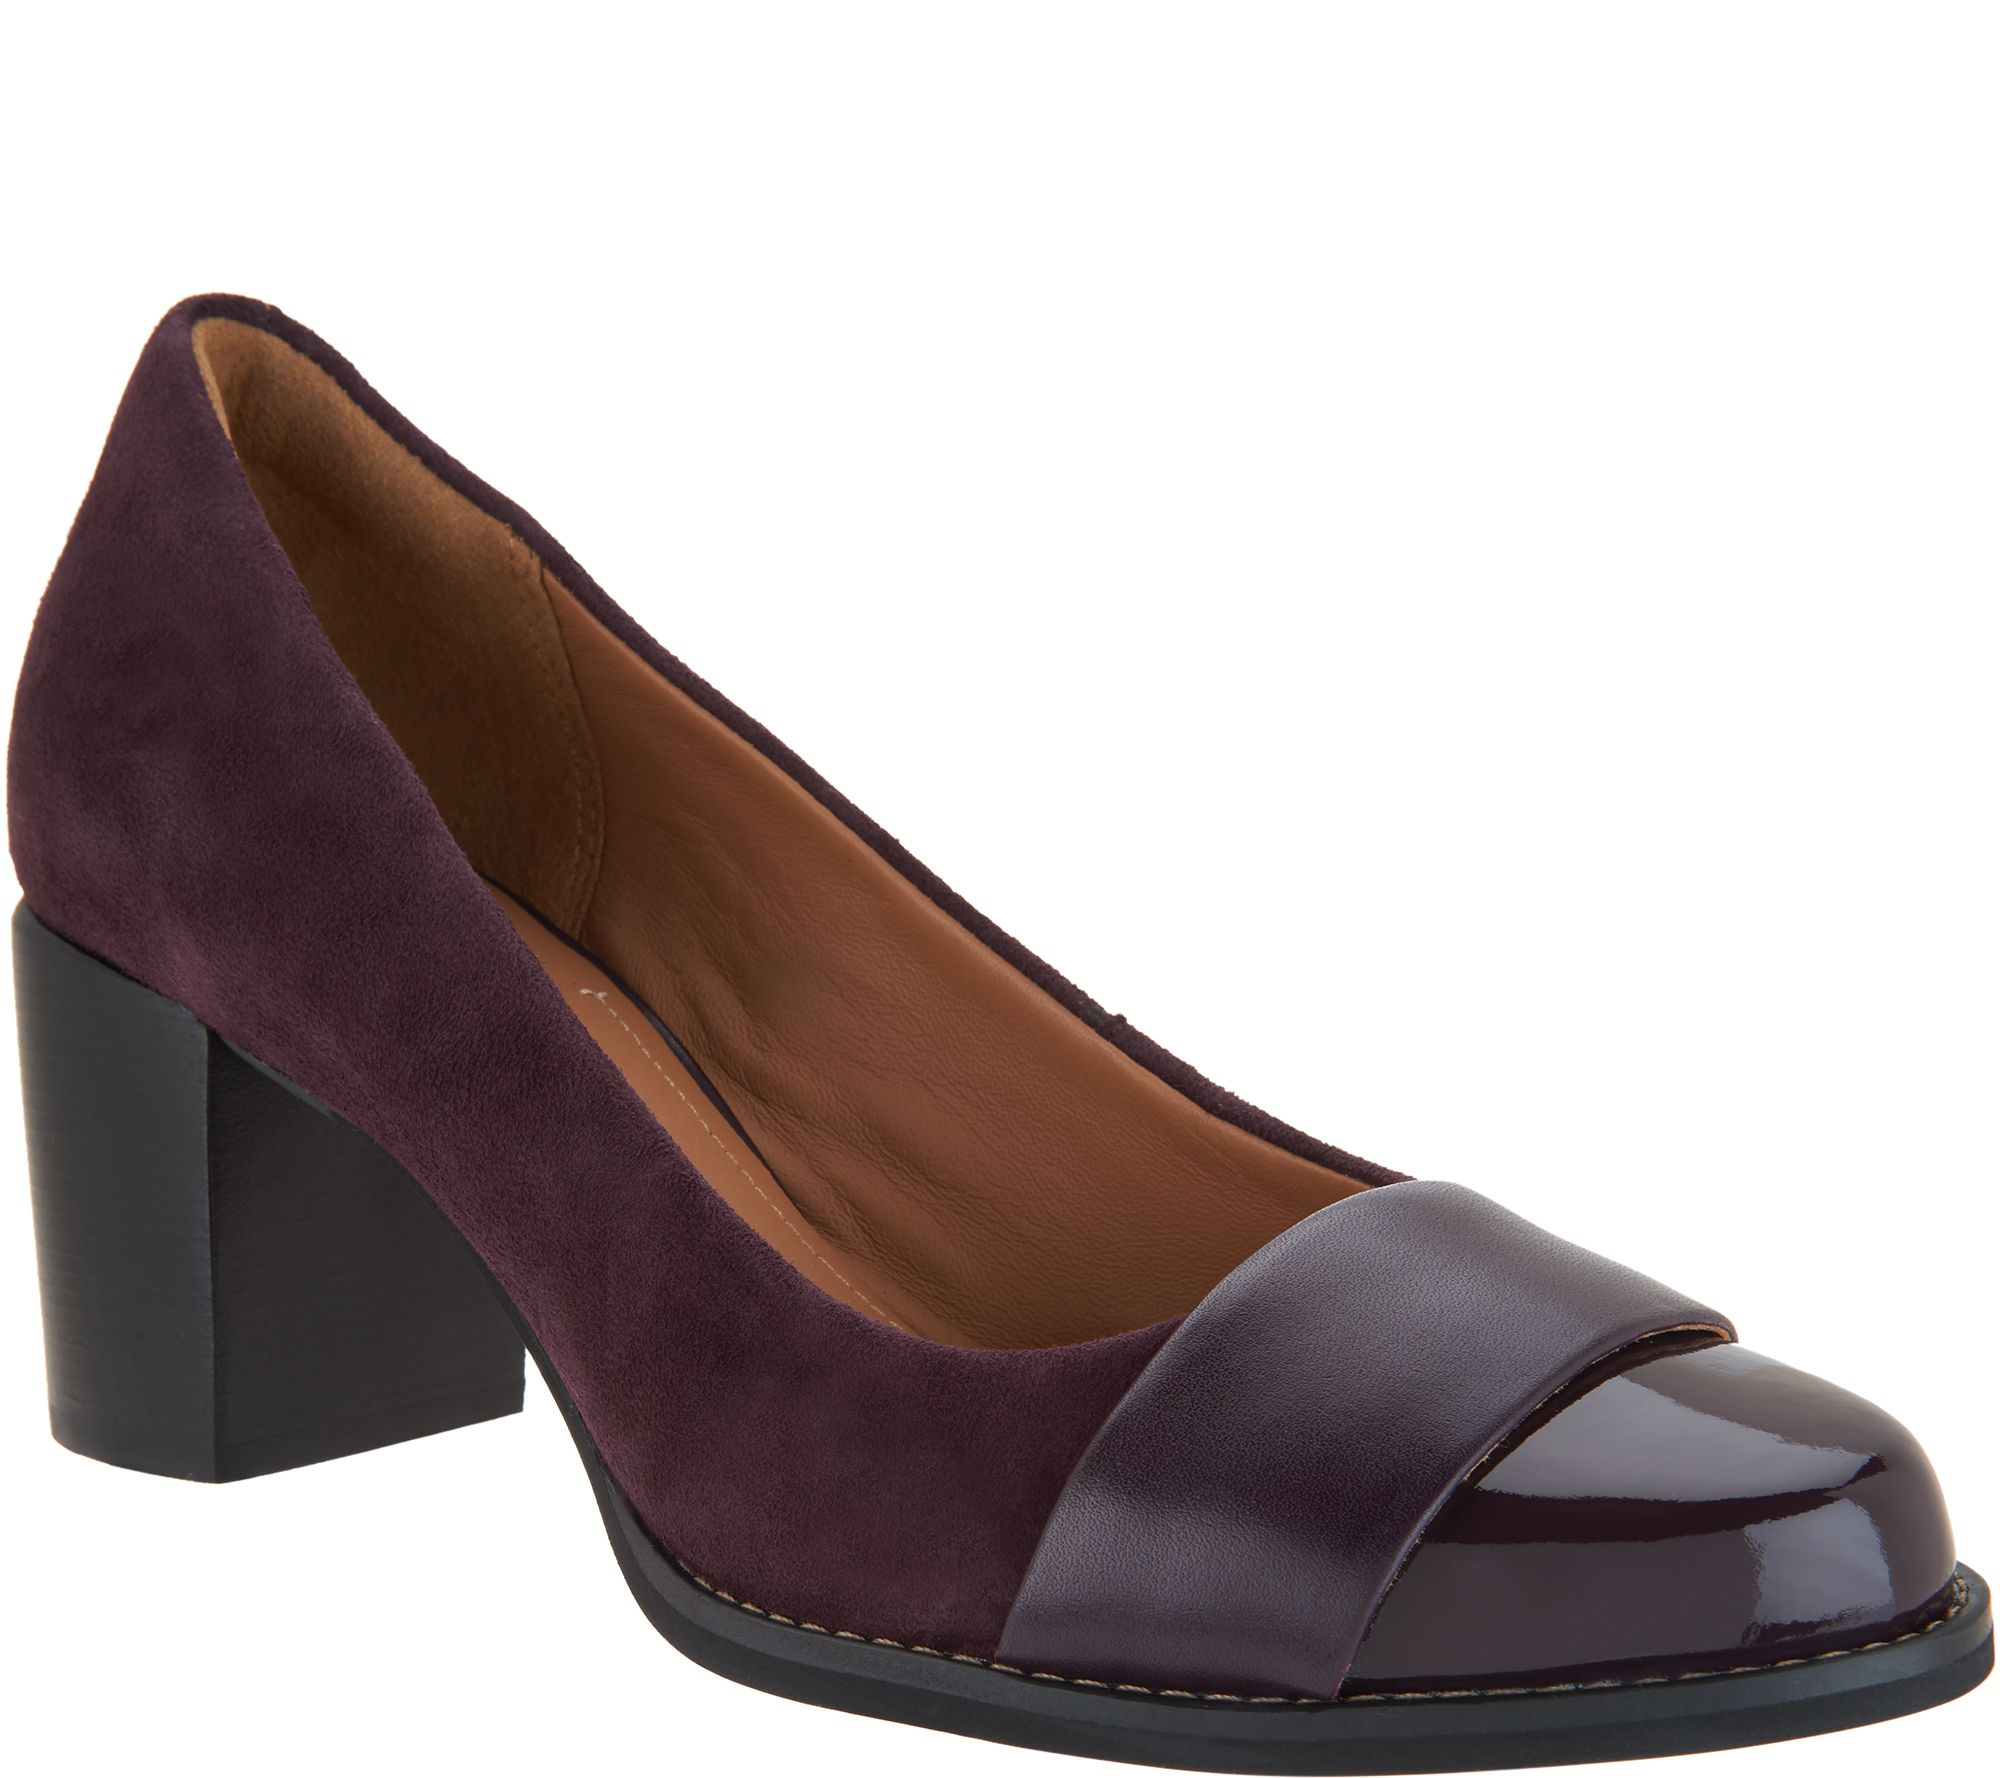 8e4015d9b32 Clarks Artisan Leather and Suede Pumps - Tarah Brae - Page 1 — QVC.com